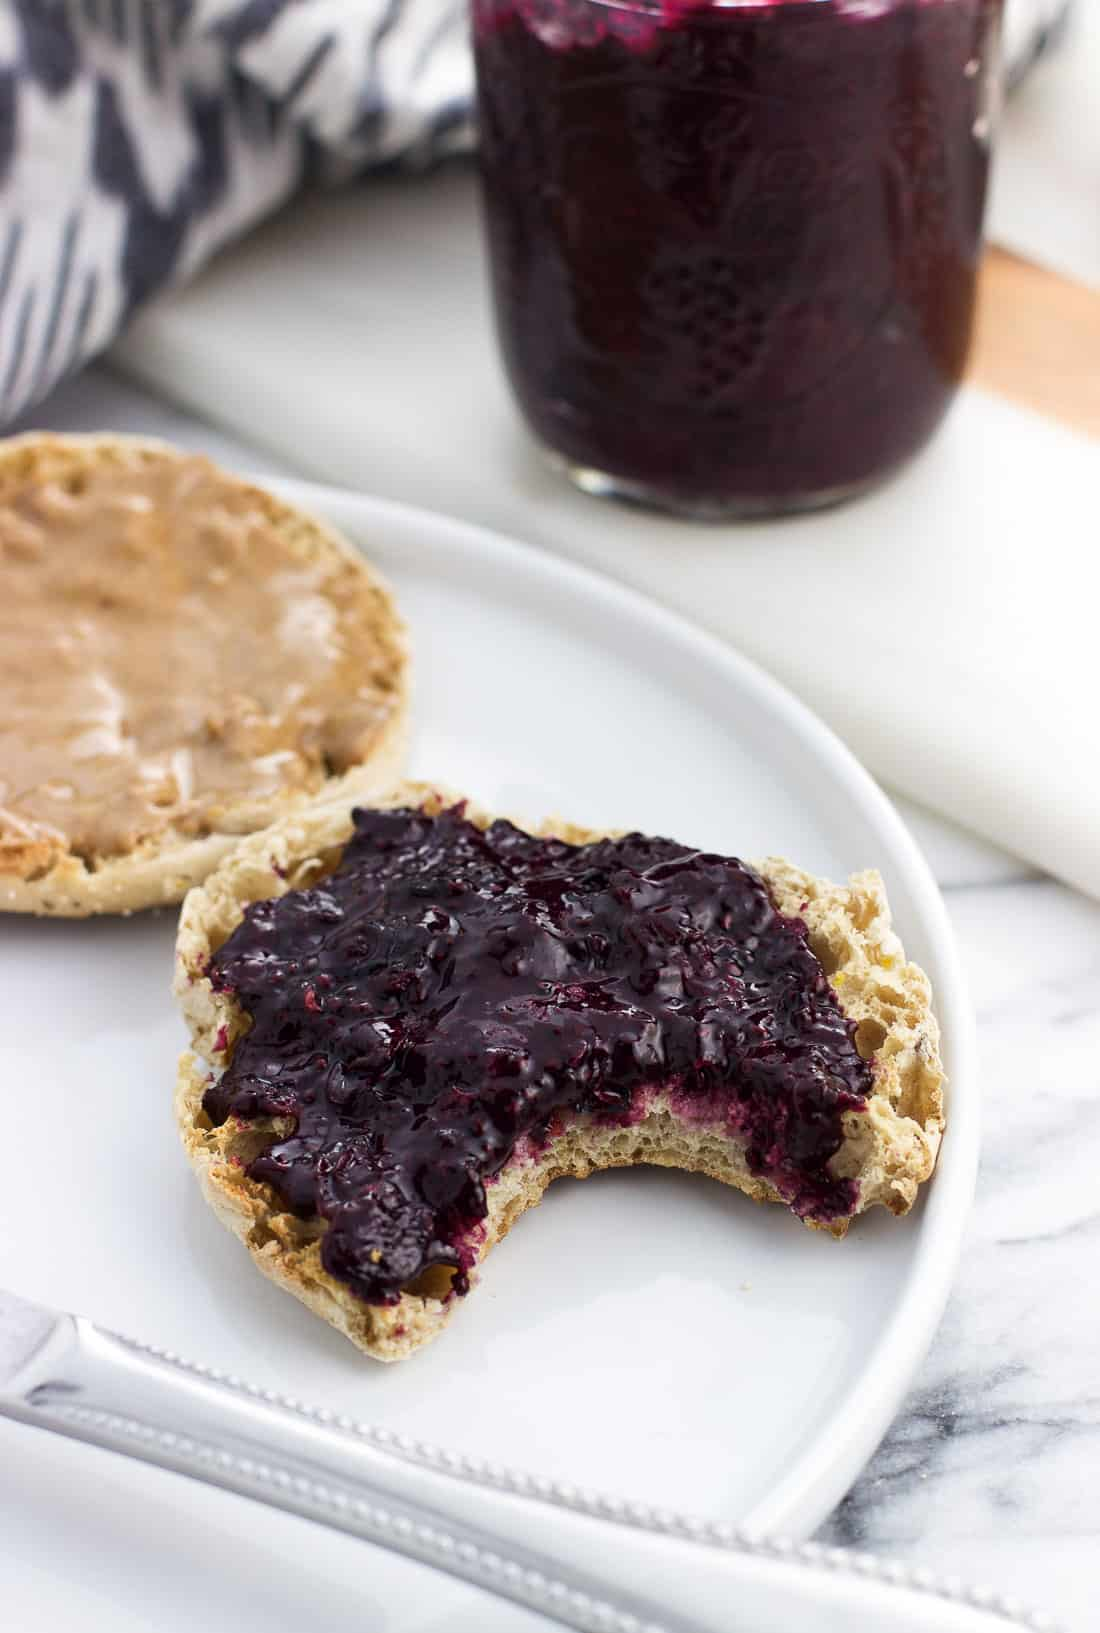 This blueberry chia jam is an easy, four-ingredient refrigerator jam recipe that comes together in fifteen minutes. There's no added sugar in this healthy blueberry jam.